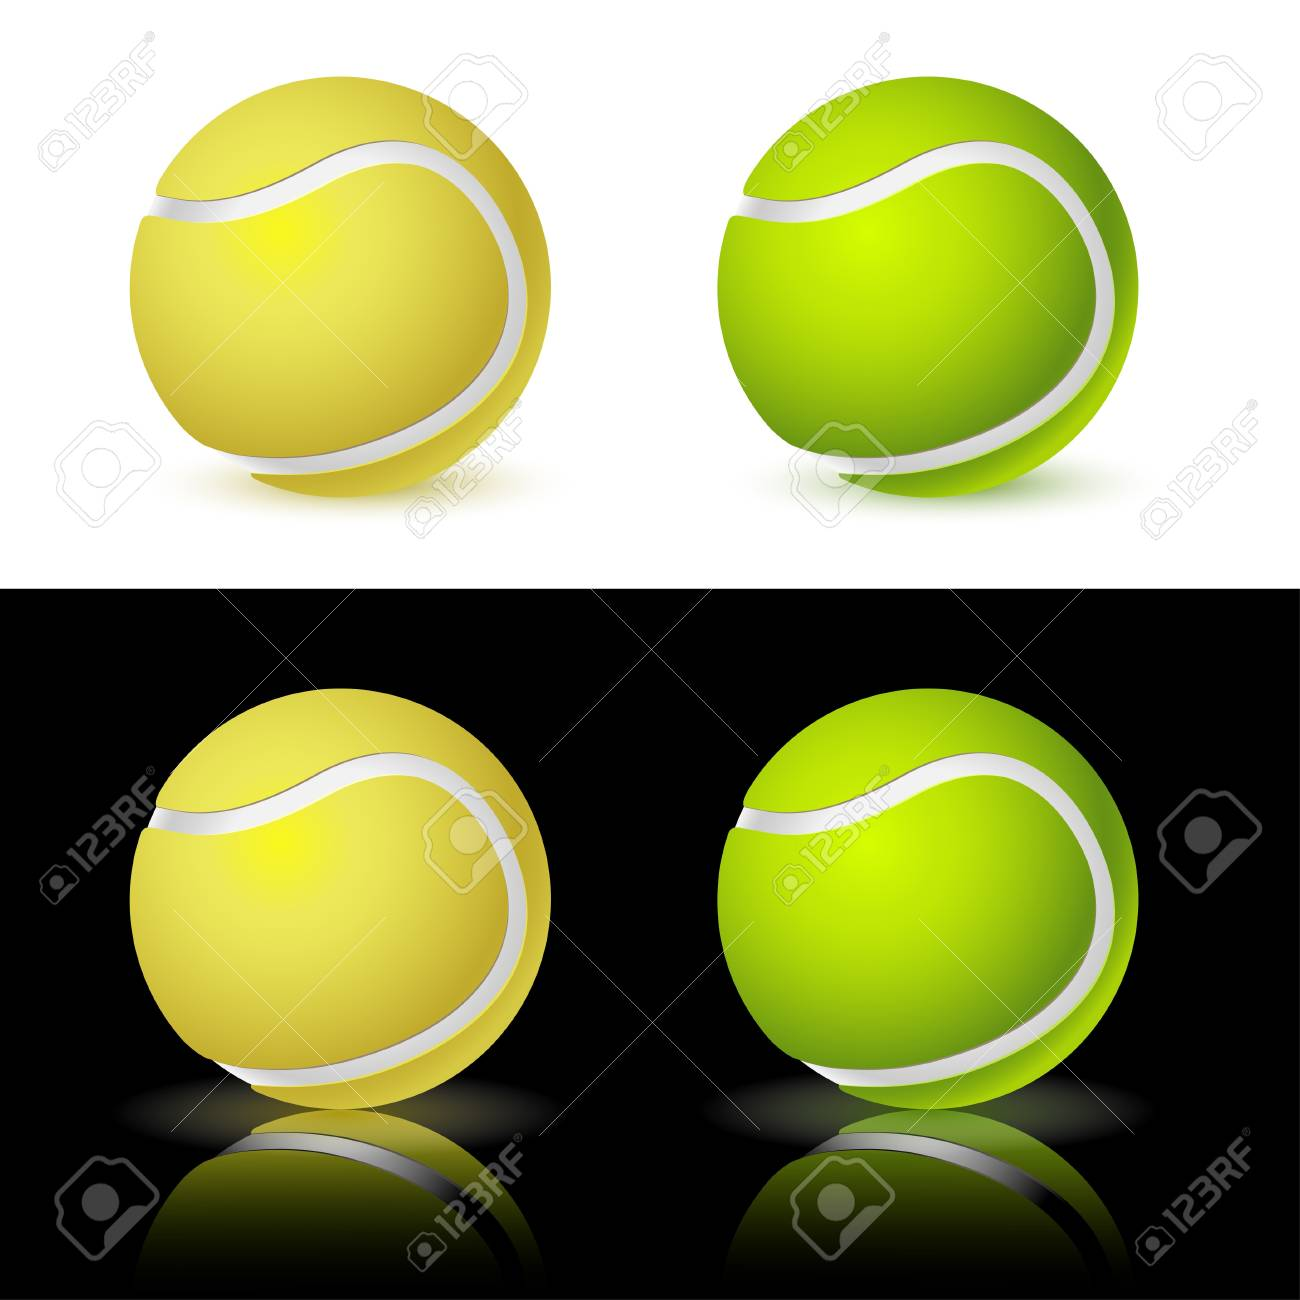 Illustration of the four tennis balls on white and black background. Vector. Stock Vector - 12326701